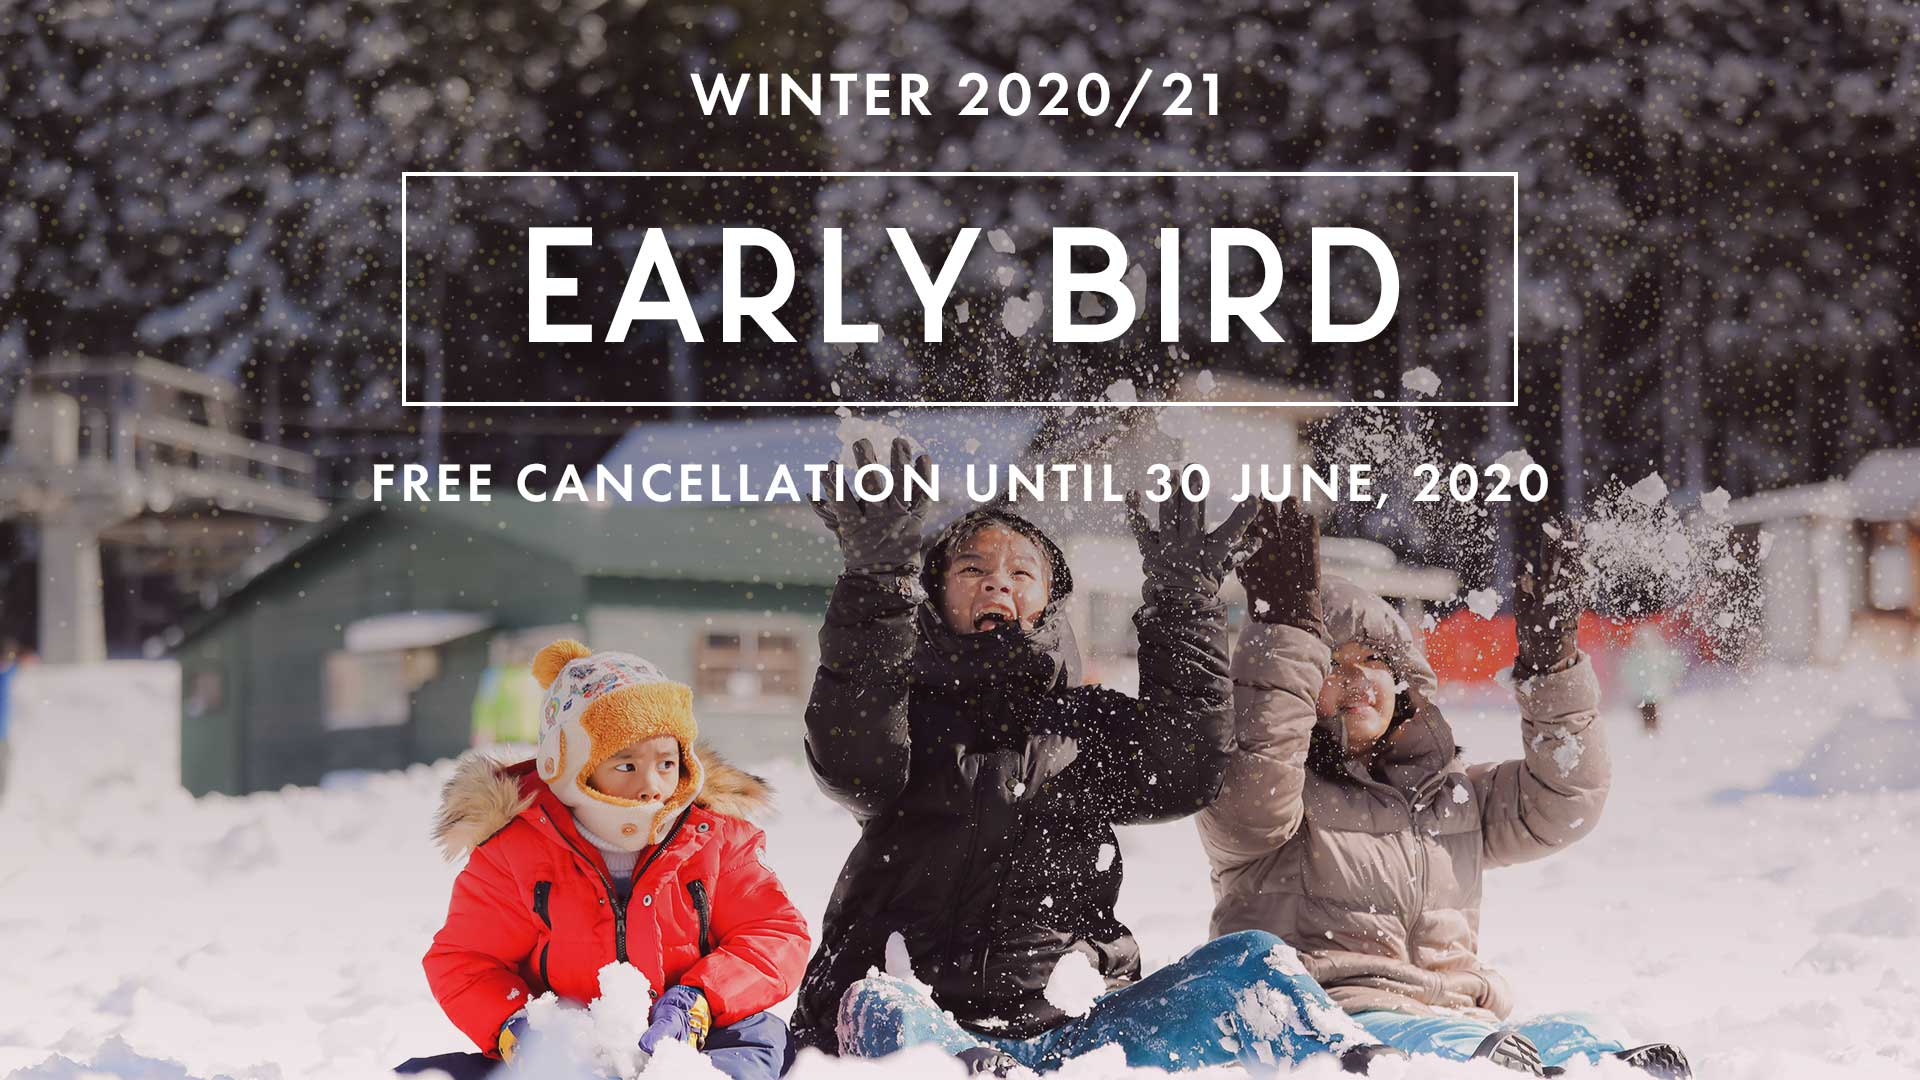 Winter 2020/21 Early Bird Promotion